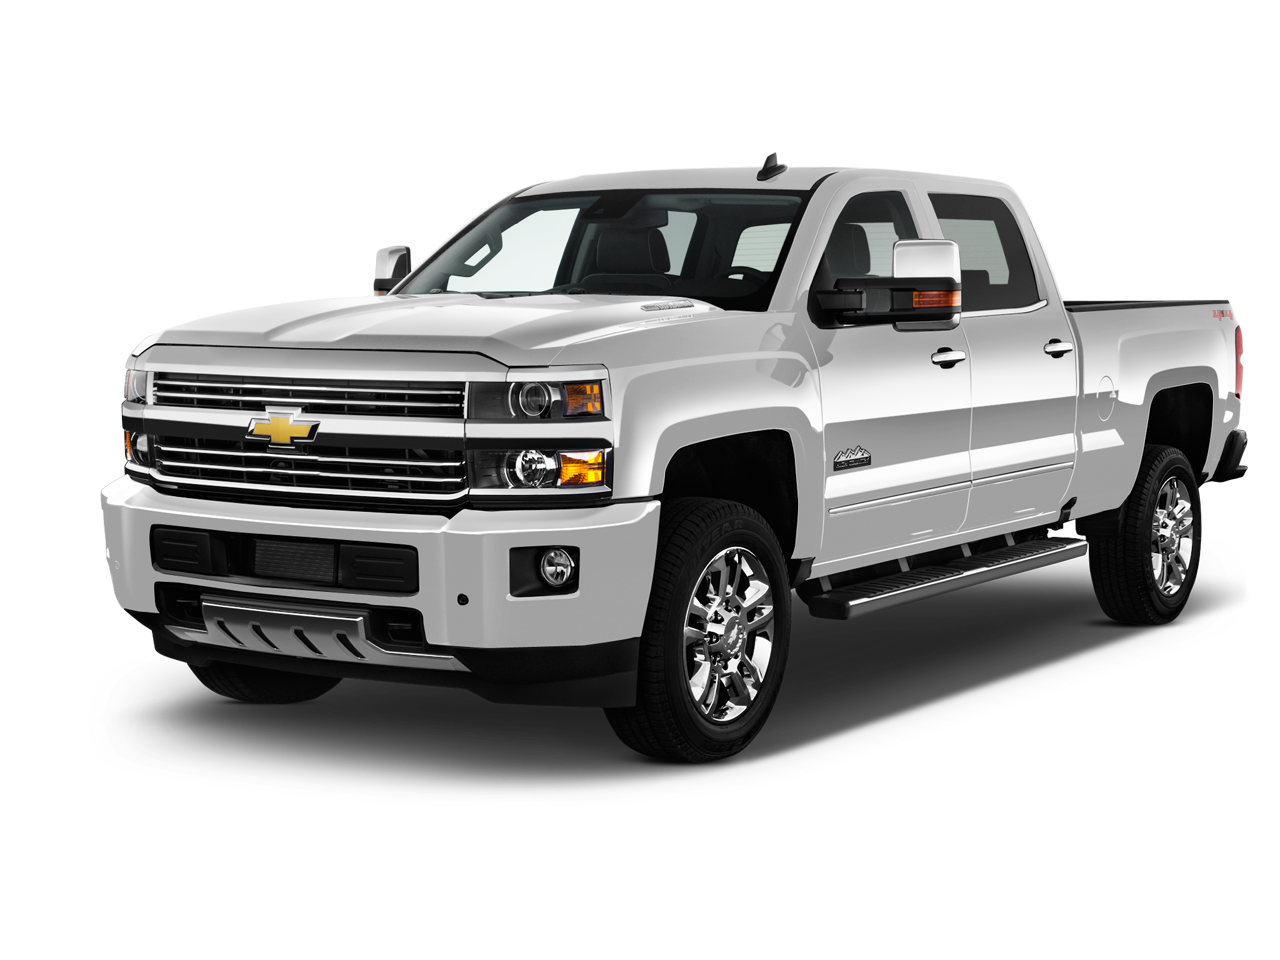 new 2016 chevrolet silverado 2500hd lt near boone ia. Black Bedroom Furniture Sets. Home Design Ideas